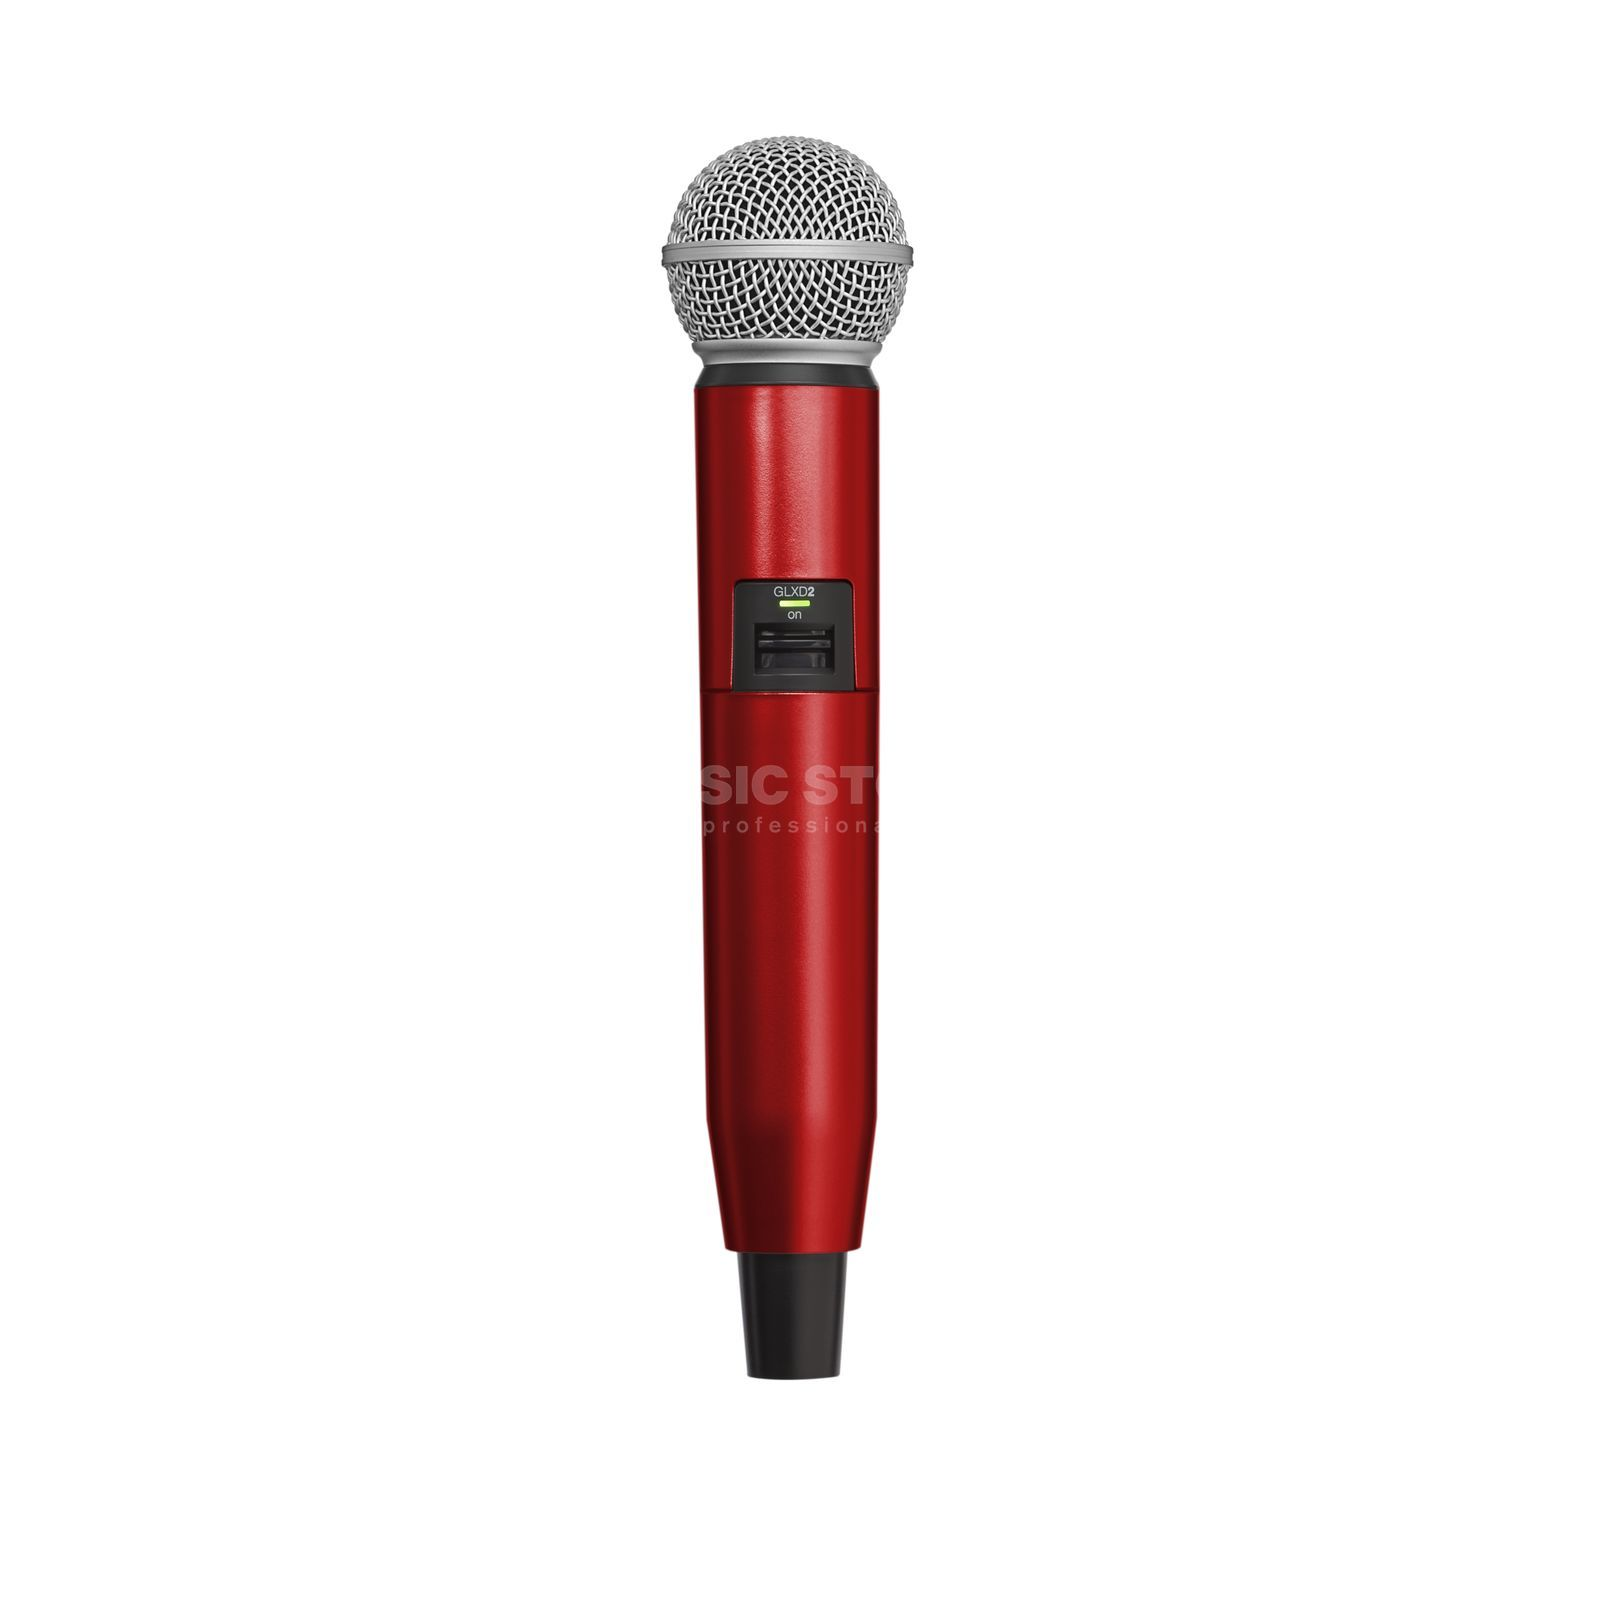 Shure WA723 Colour Housing red for GLXD2/SM58, GLXD2/Beta58A Produktbillede